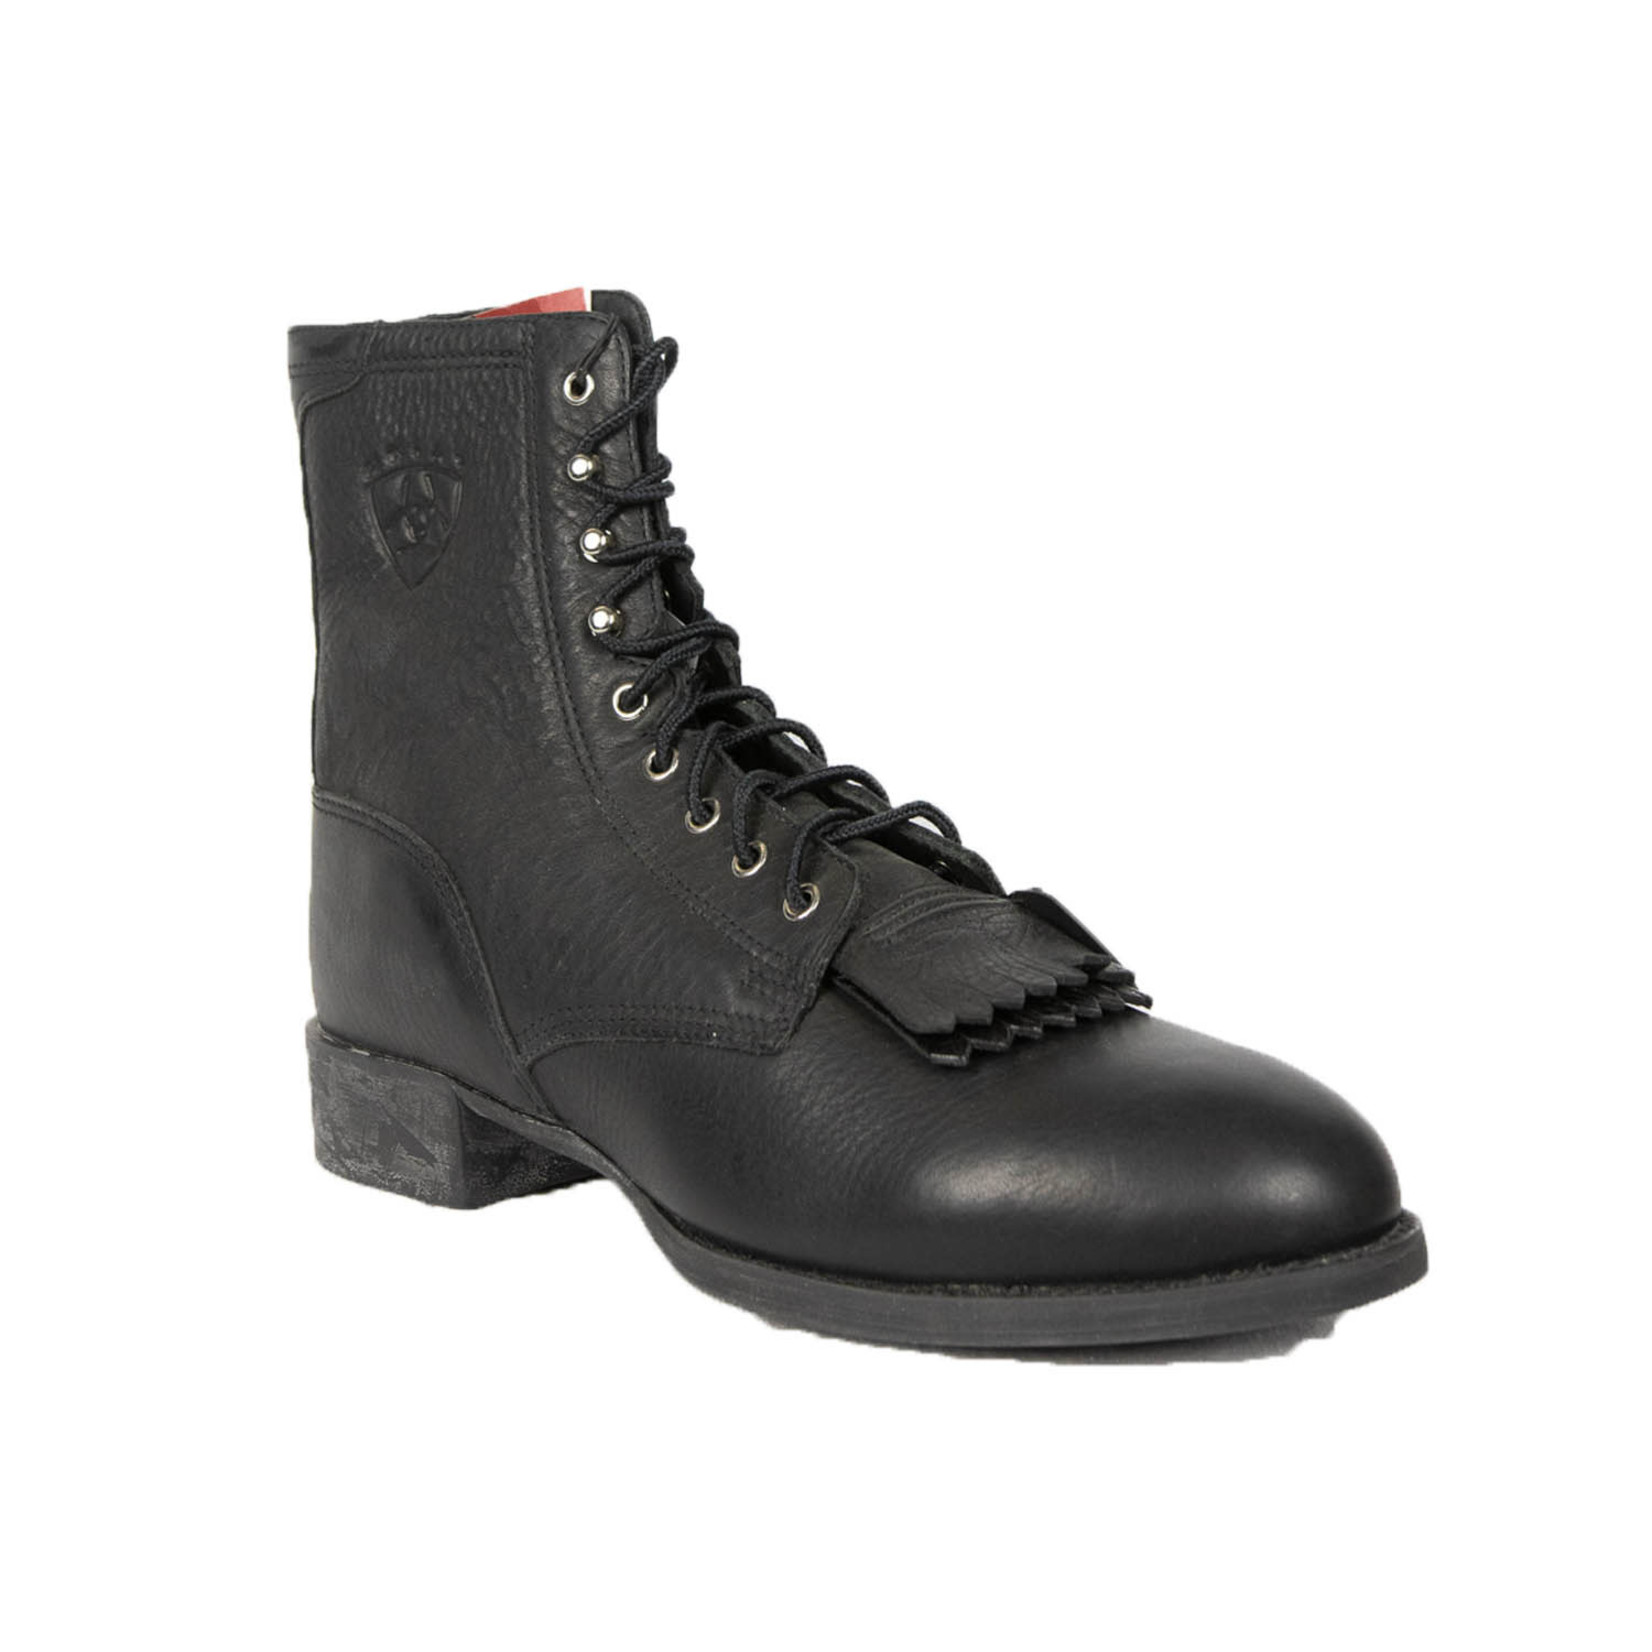 Canada West Canada West Black Lace Up Western Boot 3006